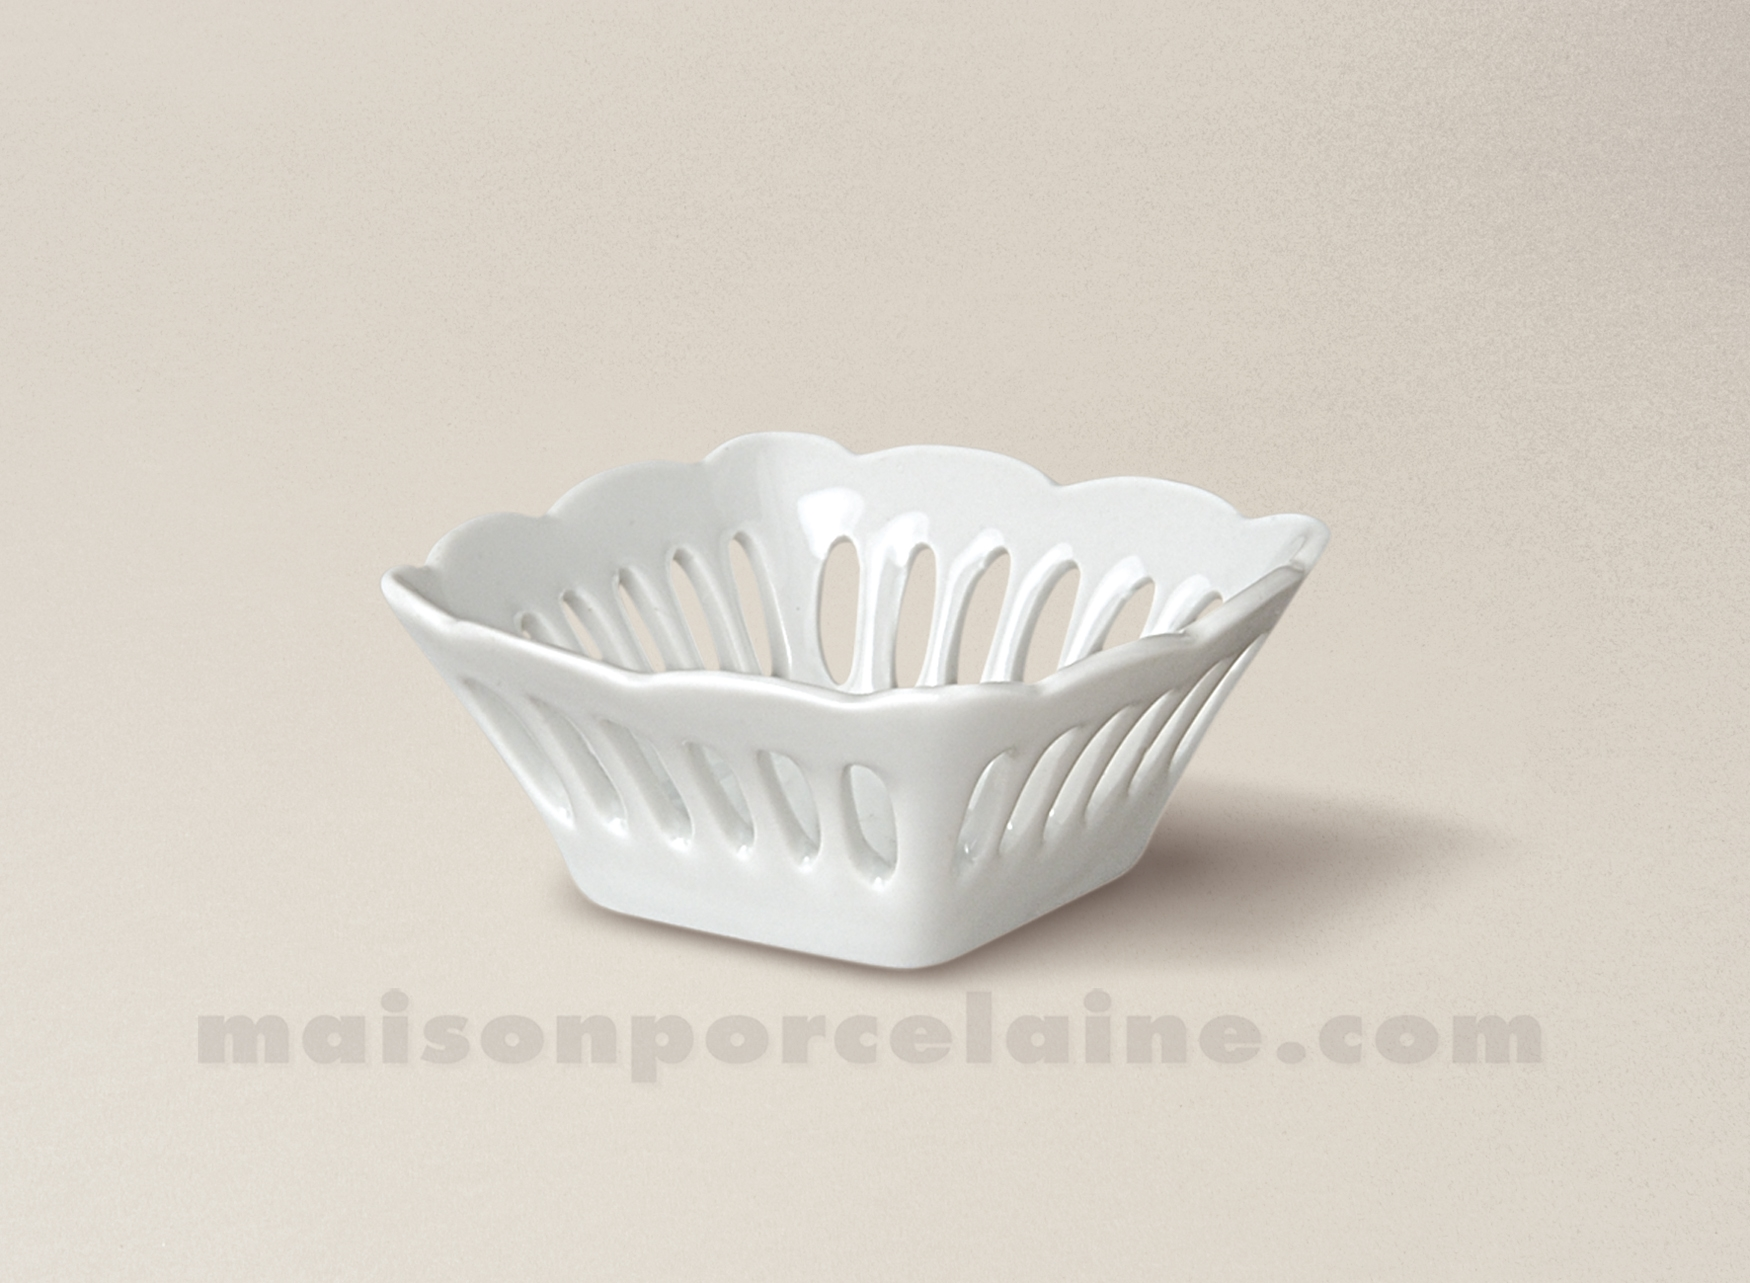 Coupelle porcelaine blanche ajouree carree sissi pm 6x6 for Maison de la porcelaine